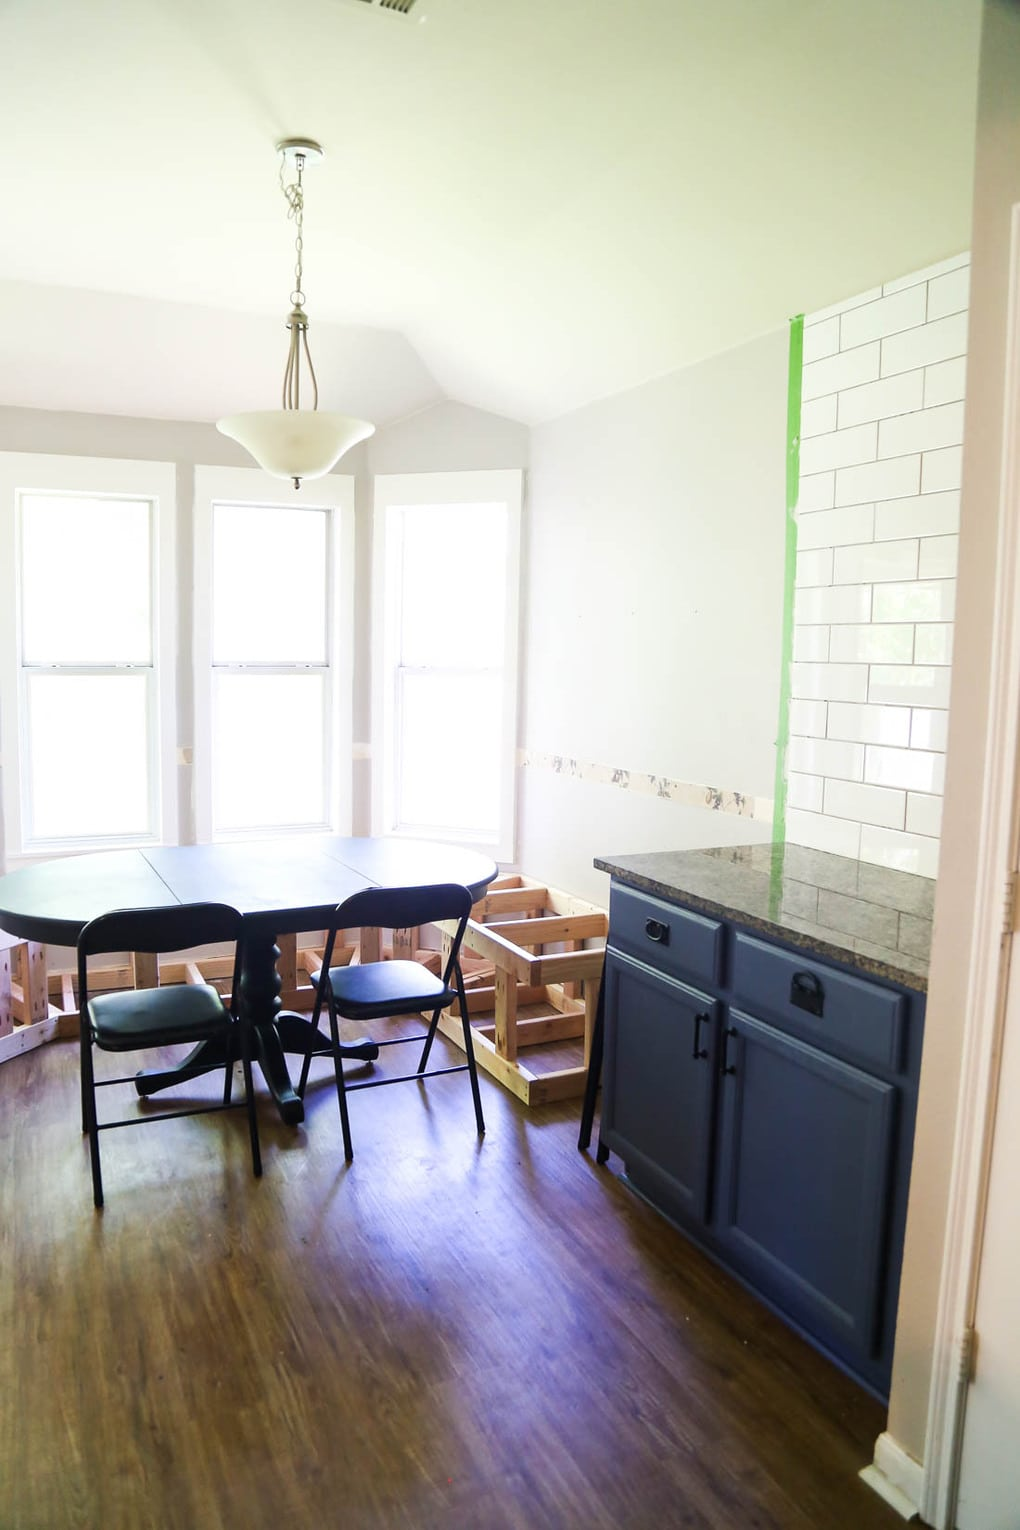 Kitchen Banquette Seating & Tiling (One Room Challenge Week 3)